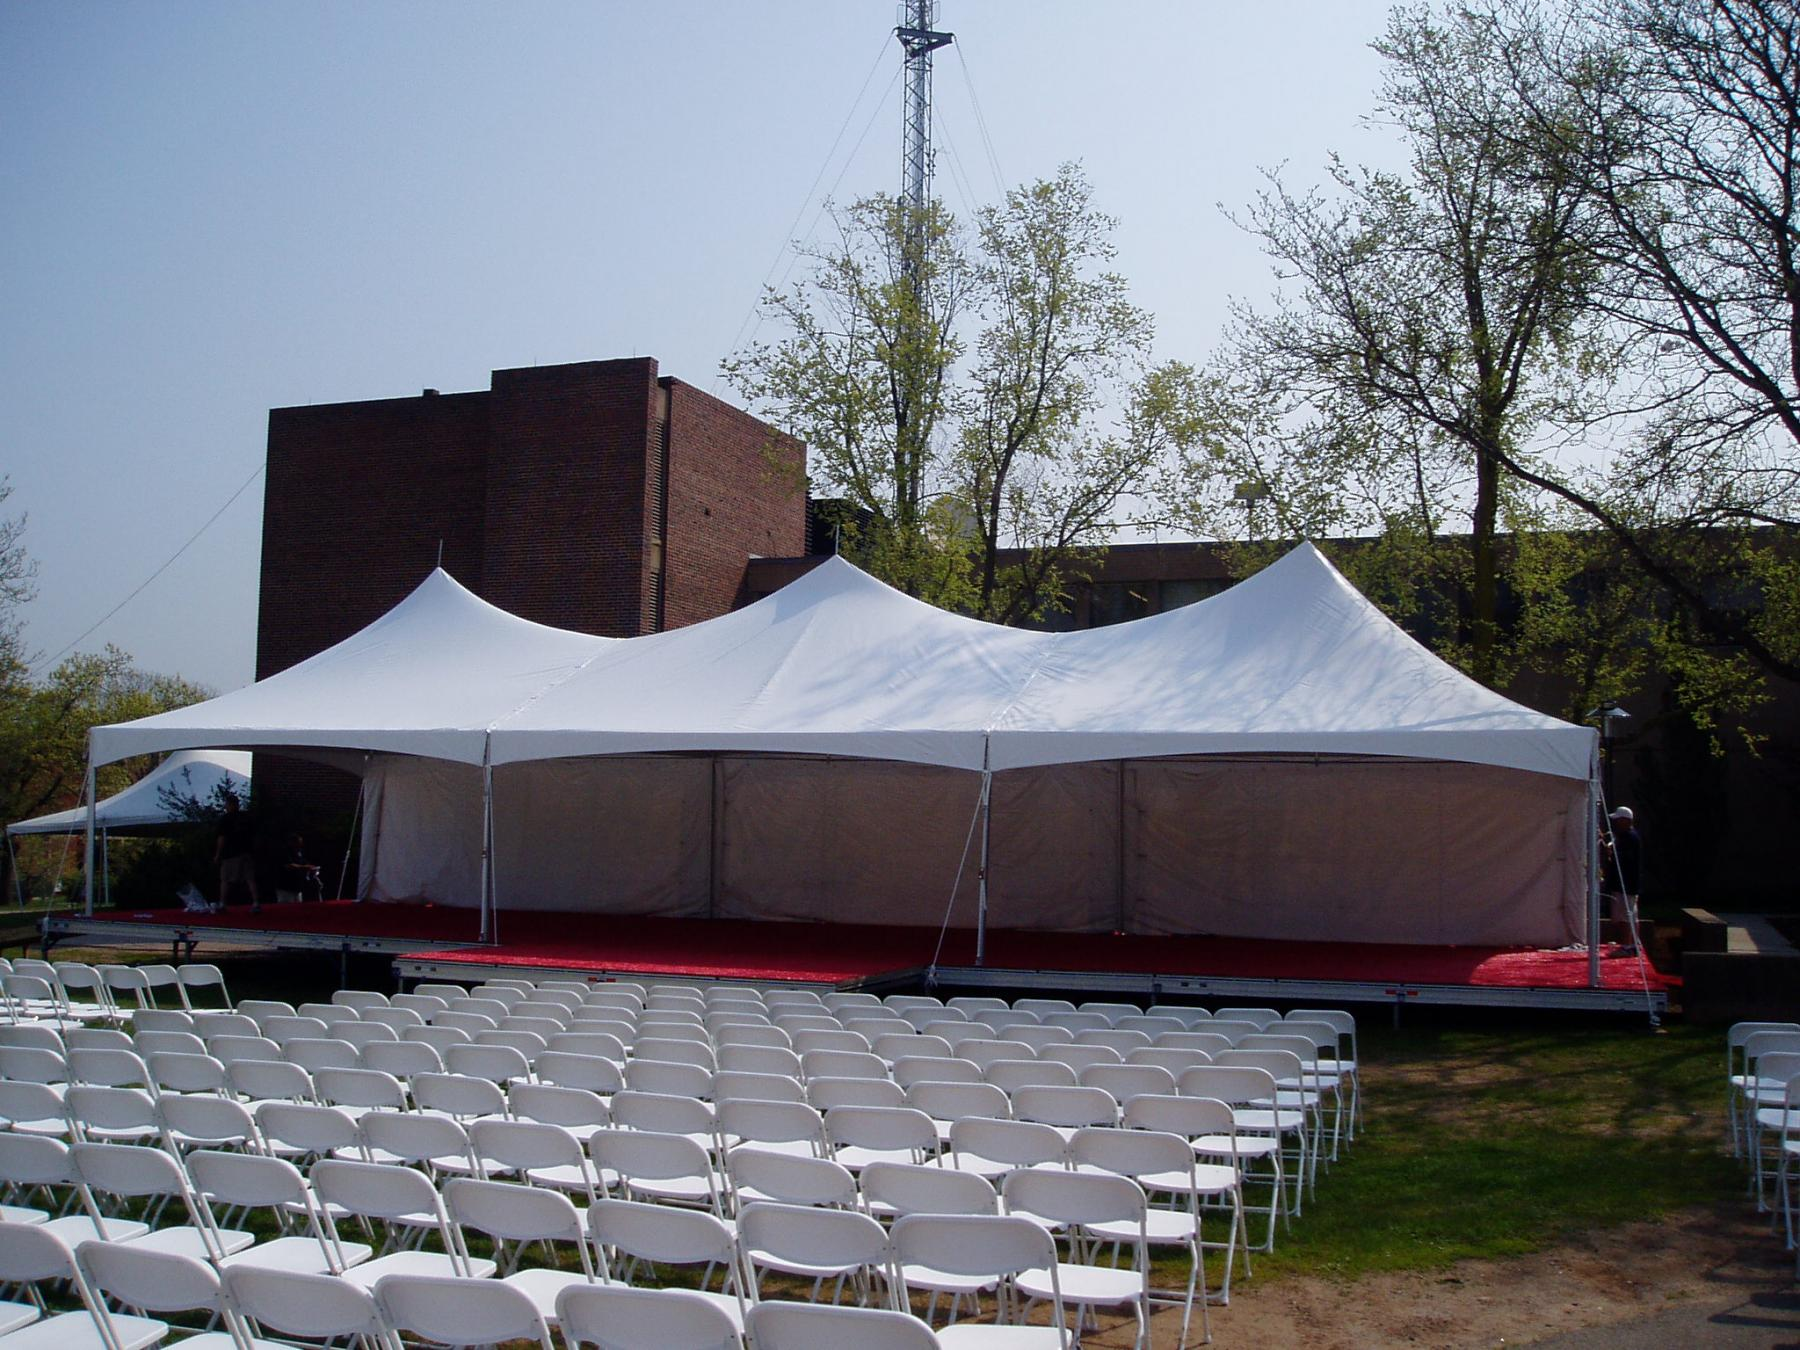 Expert Frame Tent Manufacturer | Browse Our Frame Tents For Sale Now